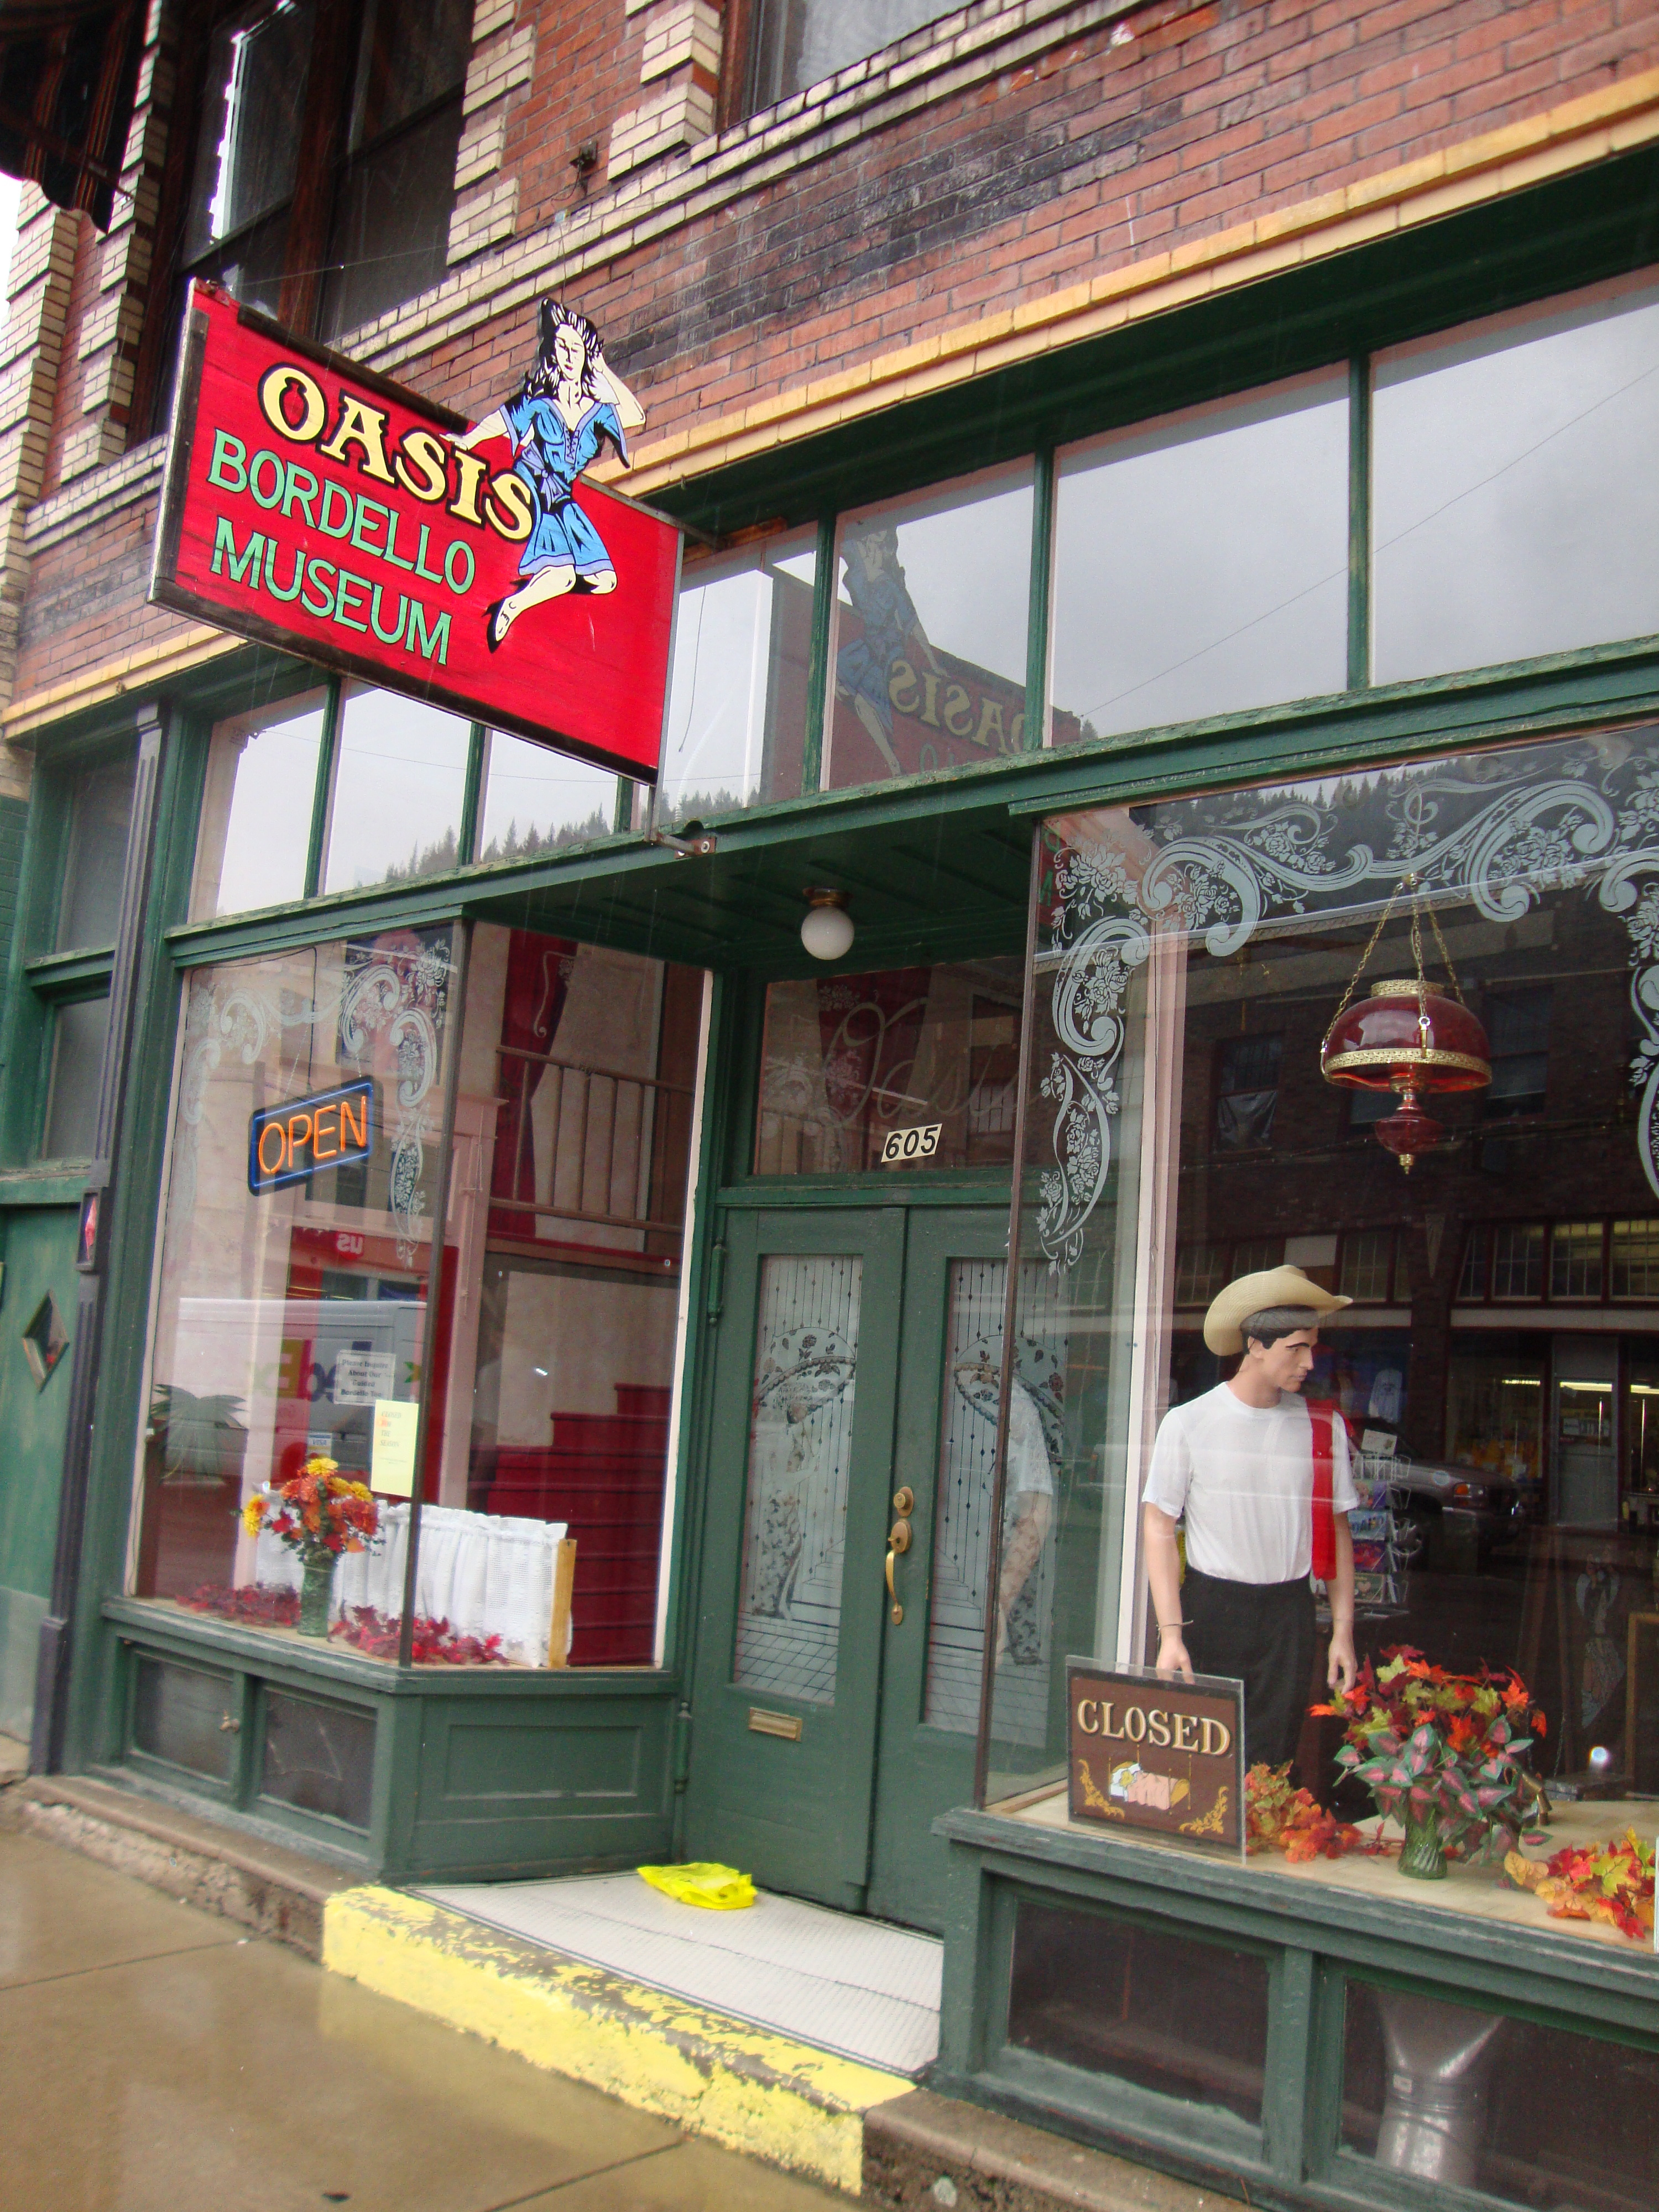 the oasis bordello museum in wallace